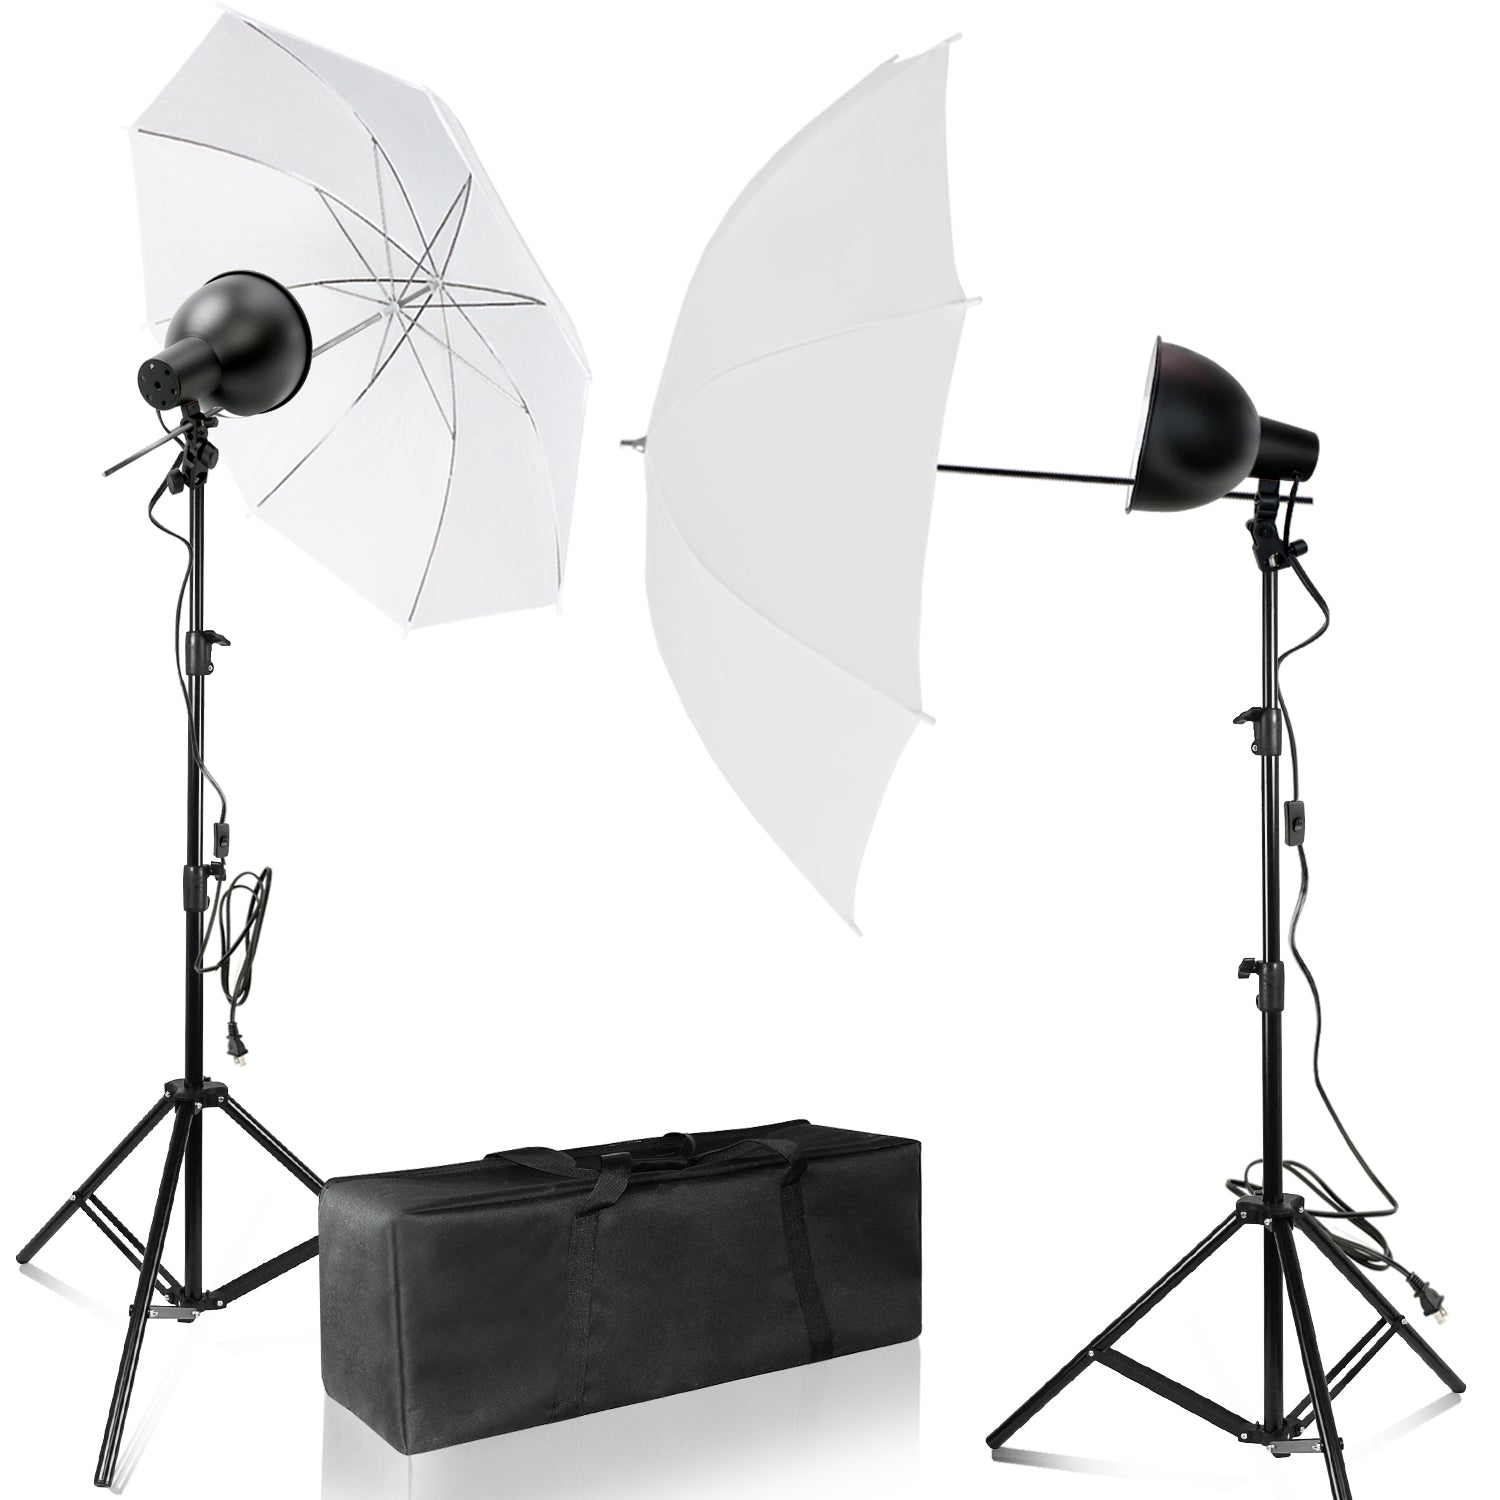 "Loadstone Studio Day Light Continuous Lighting Kit/7.5""  Reflector Dish with 20 W LED LIGHT, Light Stand Tripod, 43"" White Umbrella and Carry Bag, WMLS4659"